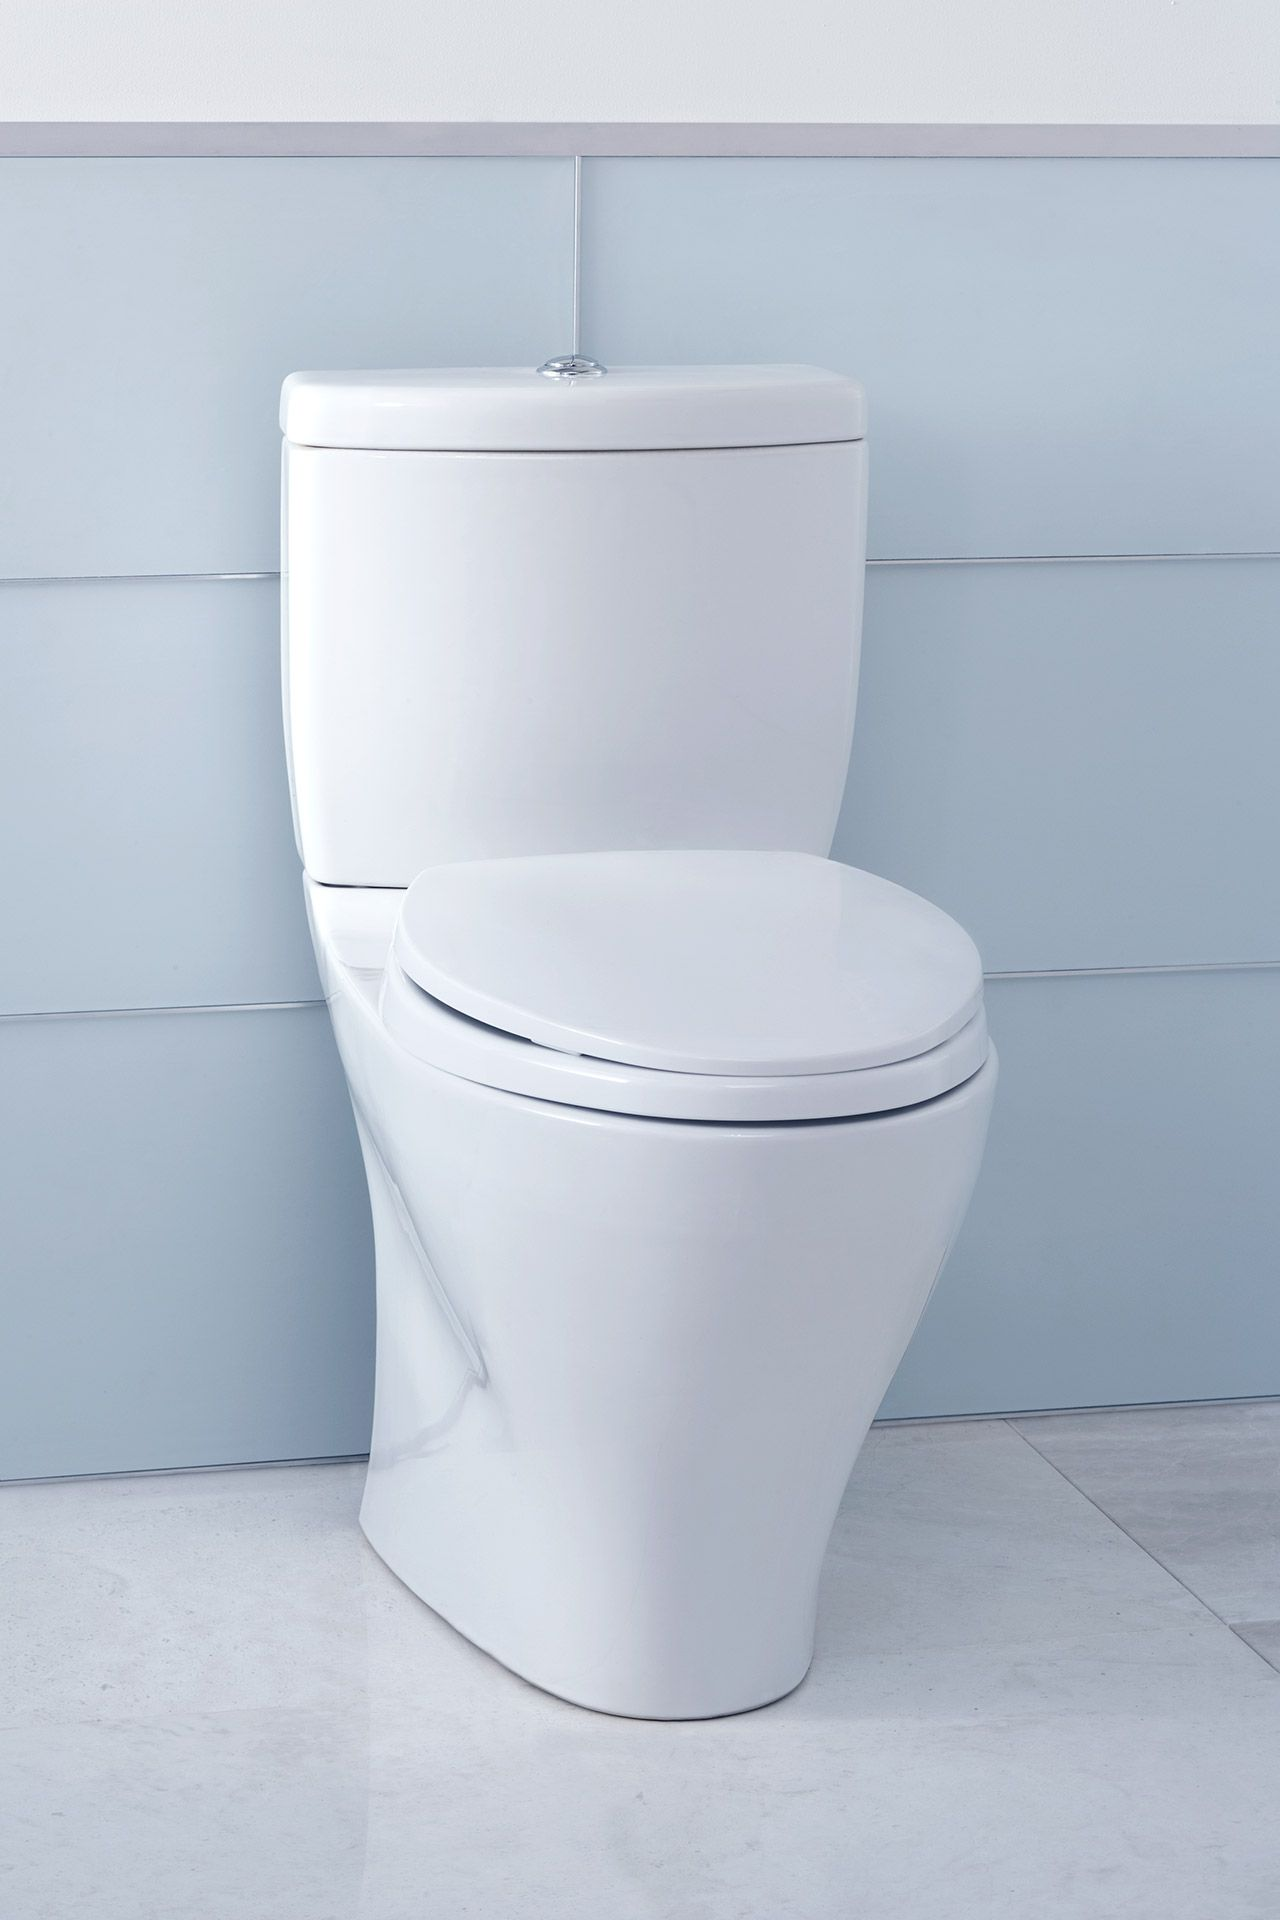 Aquia II Dual Flush Two Piece Toilet 16 GPF 09 Elongated Bowl